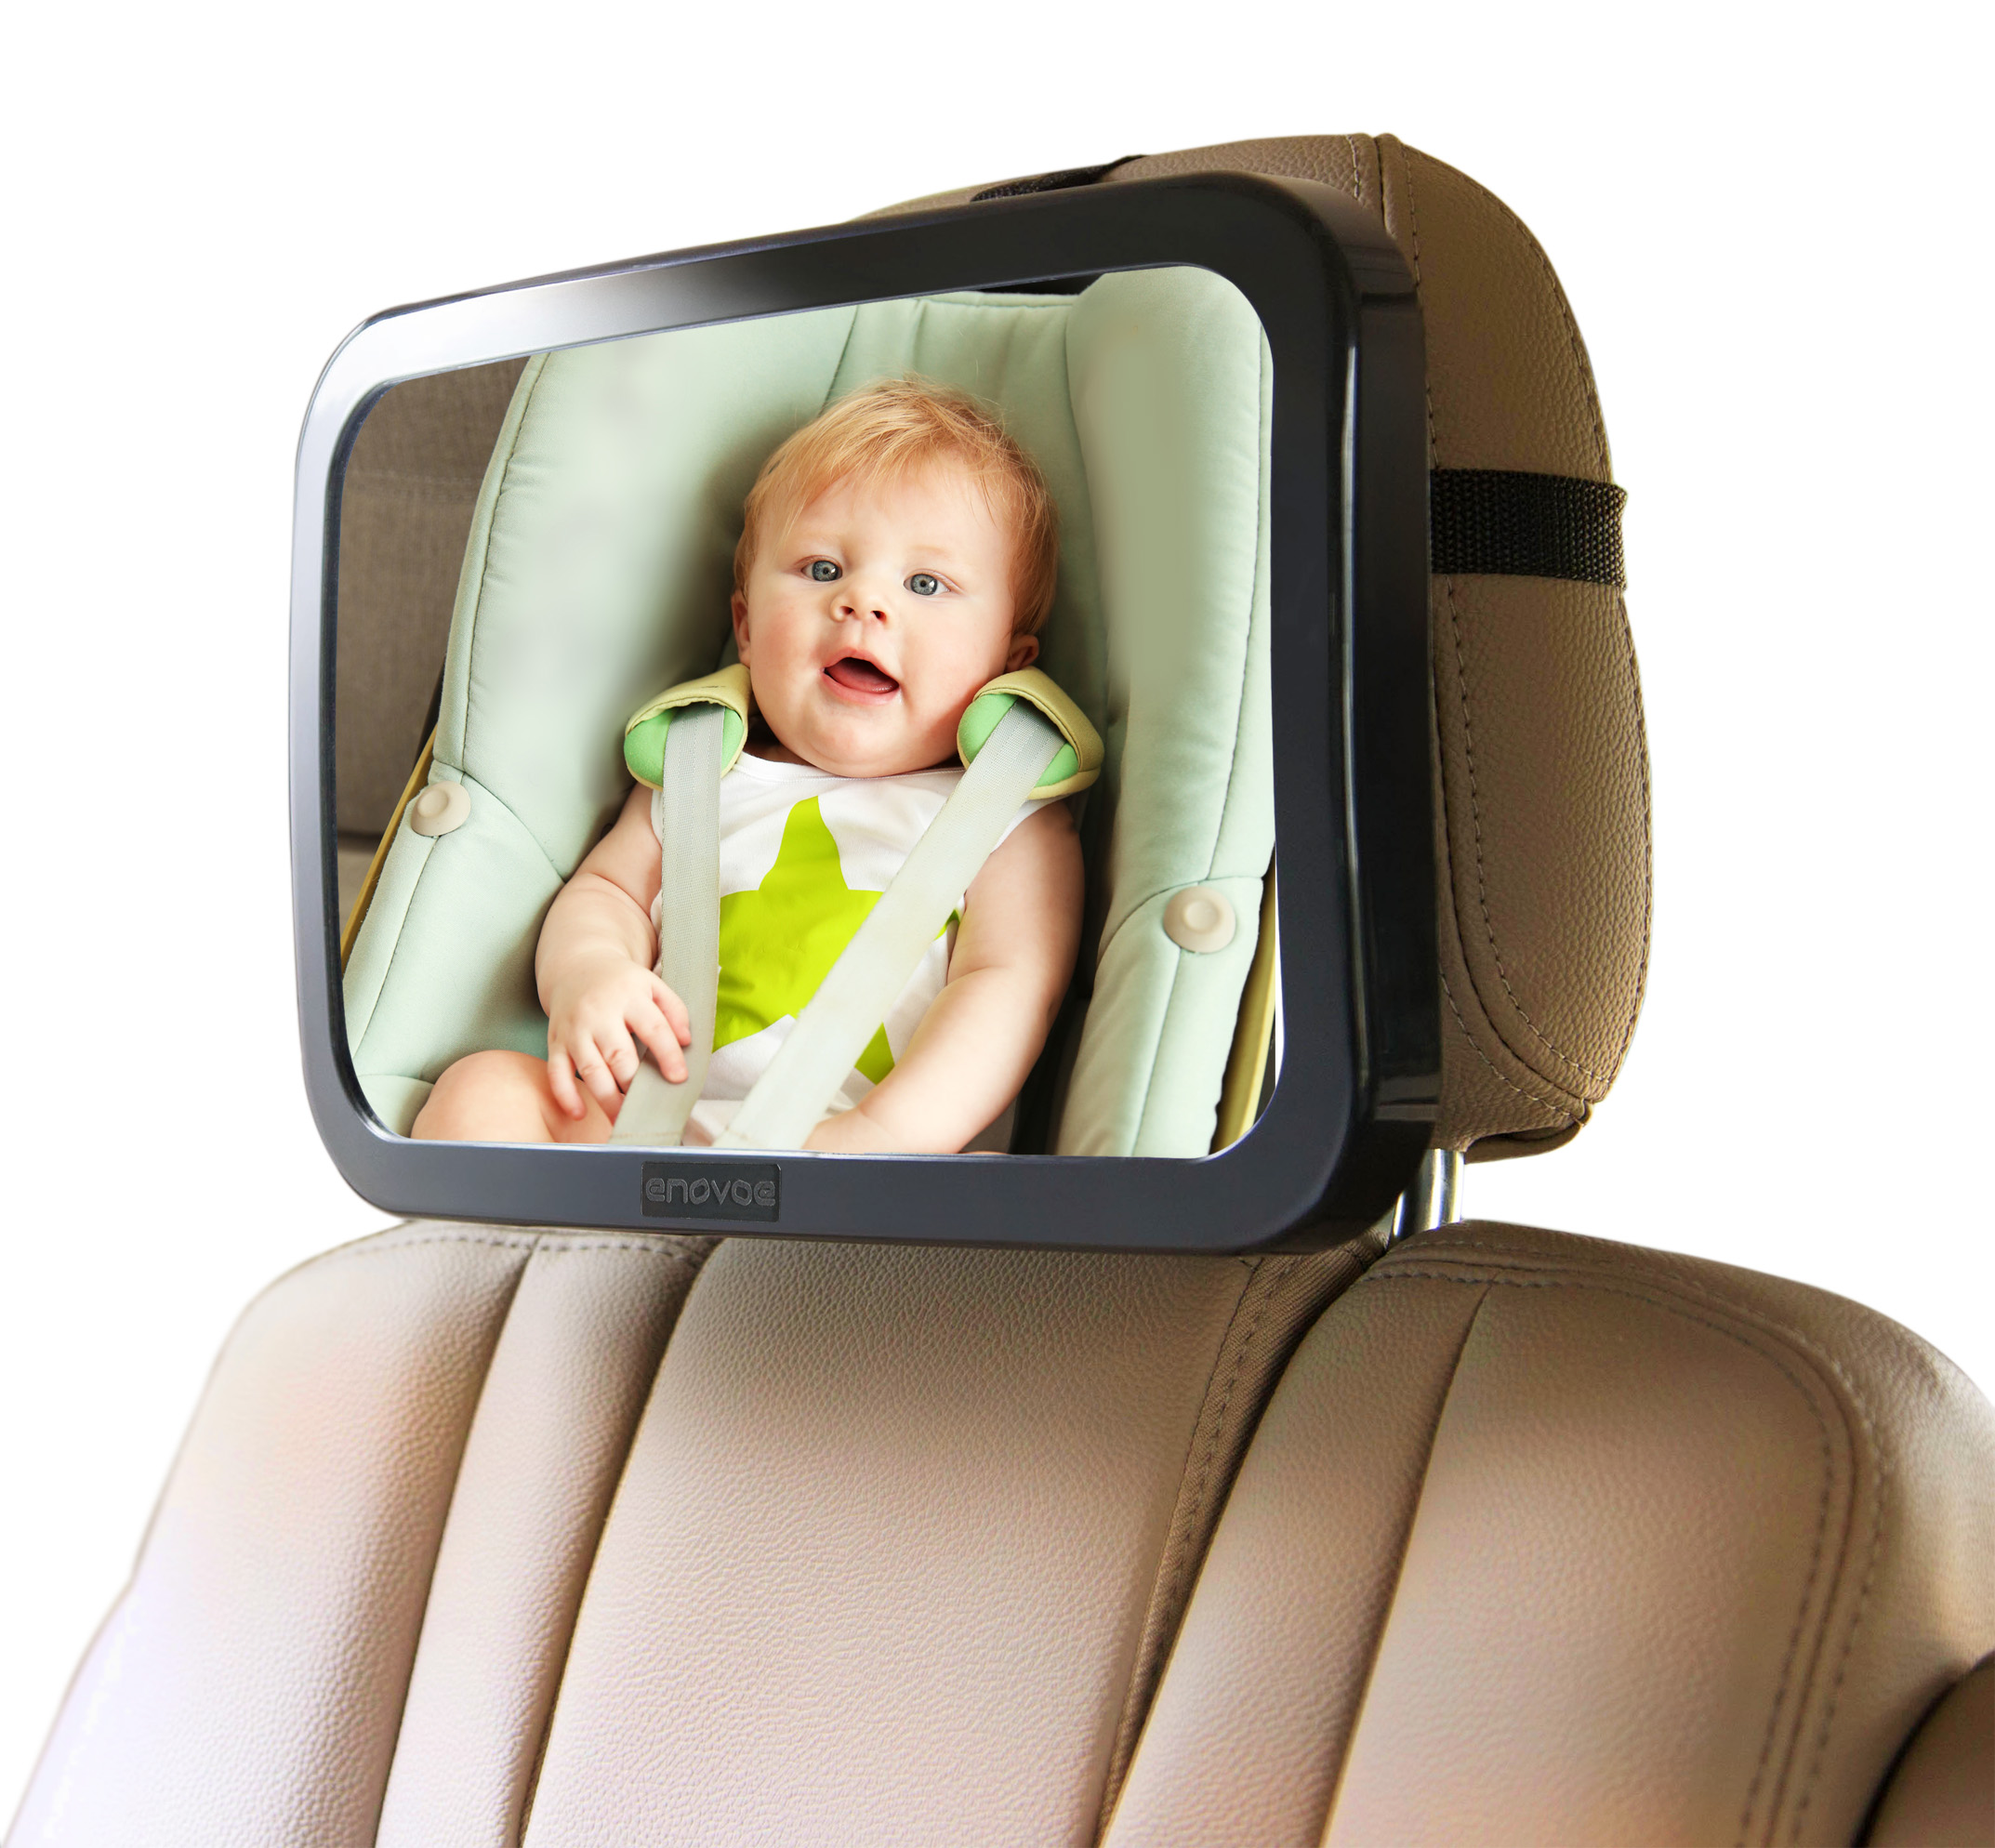 with Wide Crystal Clear View Best Newborn Safety with Secure Headrest Double-Strap View Infant in Rear Facing Car Seat Baby car Mirror for Back seat Shatterproof.